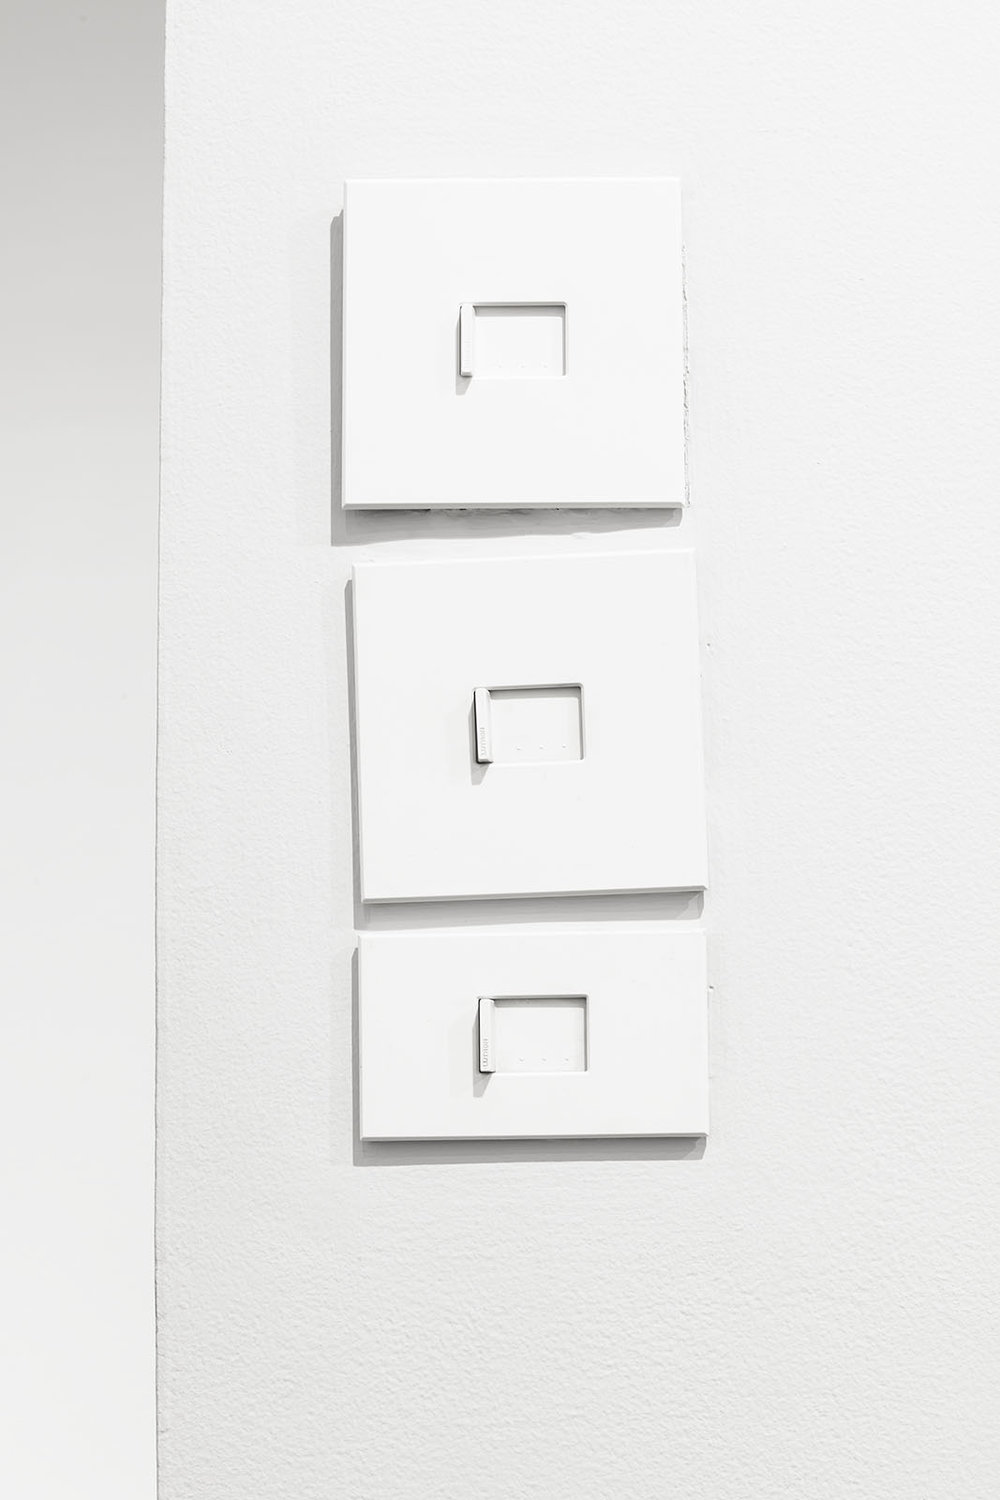 Large Dimmer Switches_Pace MacGill Gallery_2017.jpg